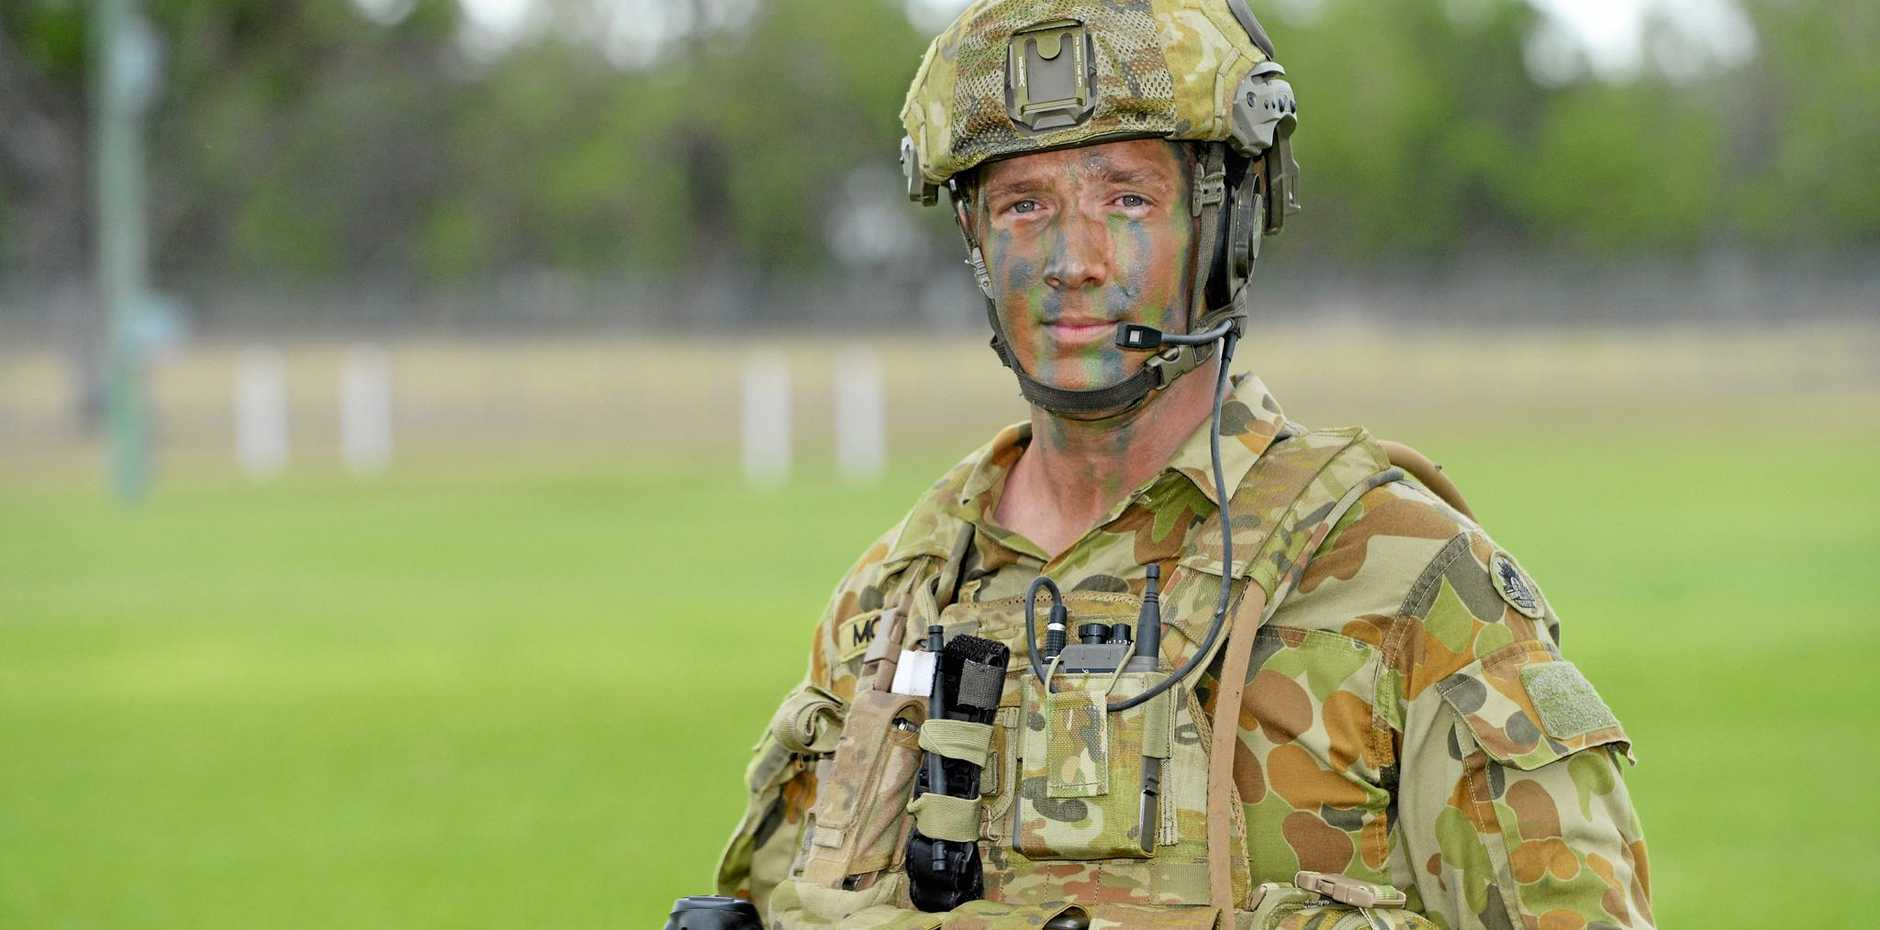 BIG ADVENTURE: Cpl Aaron McCosker from 31/42 RQR about to lead a building clearing exercise at the Western Street Barracks. He joined the Army Reserves at 19 before transfering to the regular army and serving in Afghanistan. Now he's studying to be a paramedic.